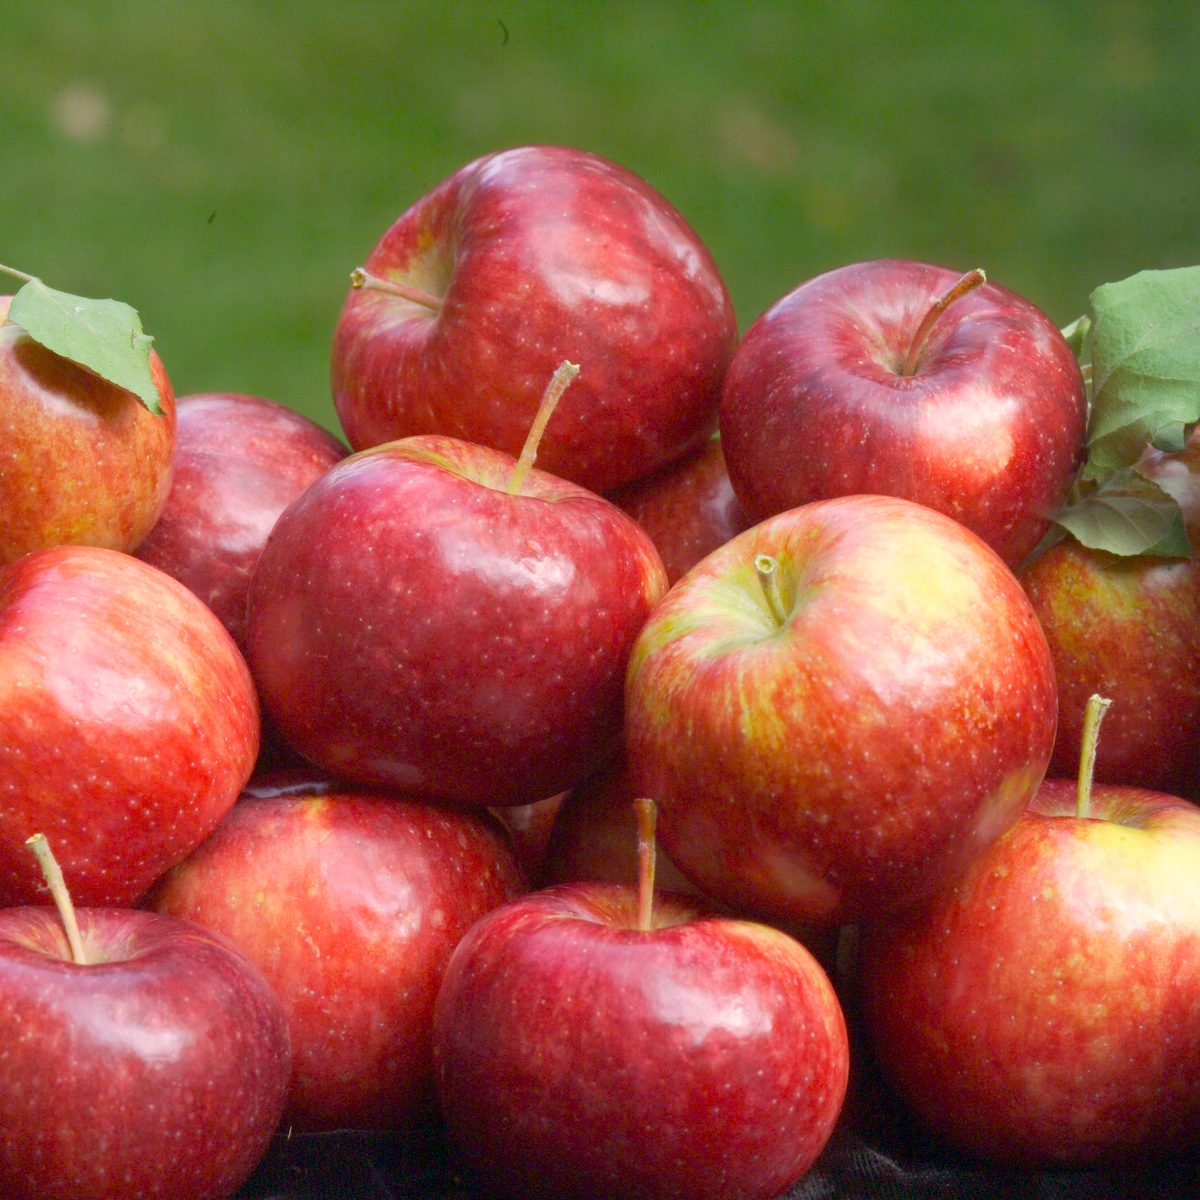 'Frostbite' apple developed by the University of Minnesota and released by the U of MN Agricultural Experiment Station in 2008